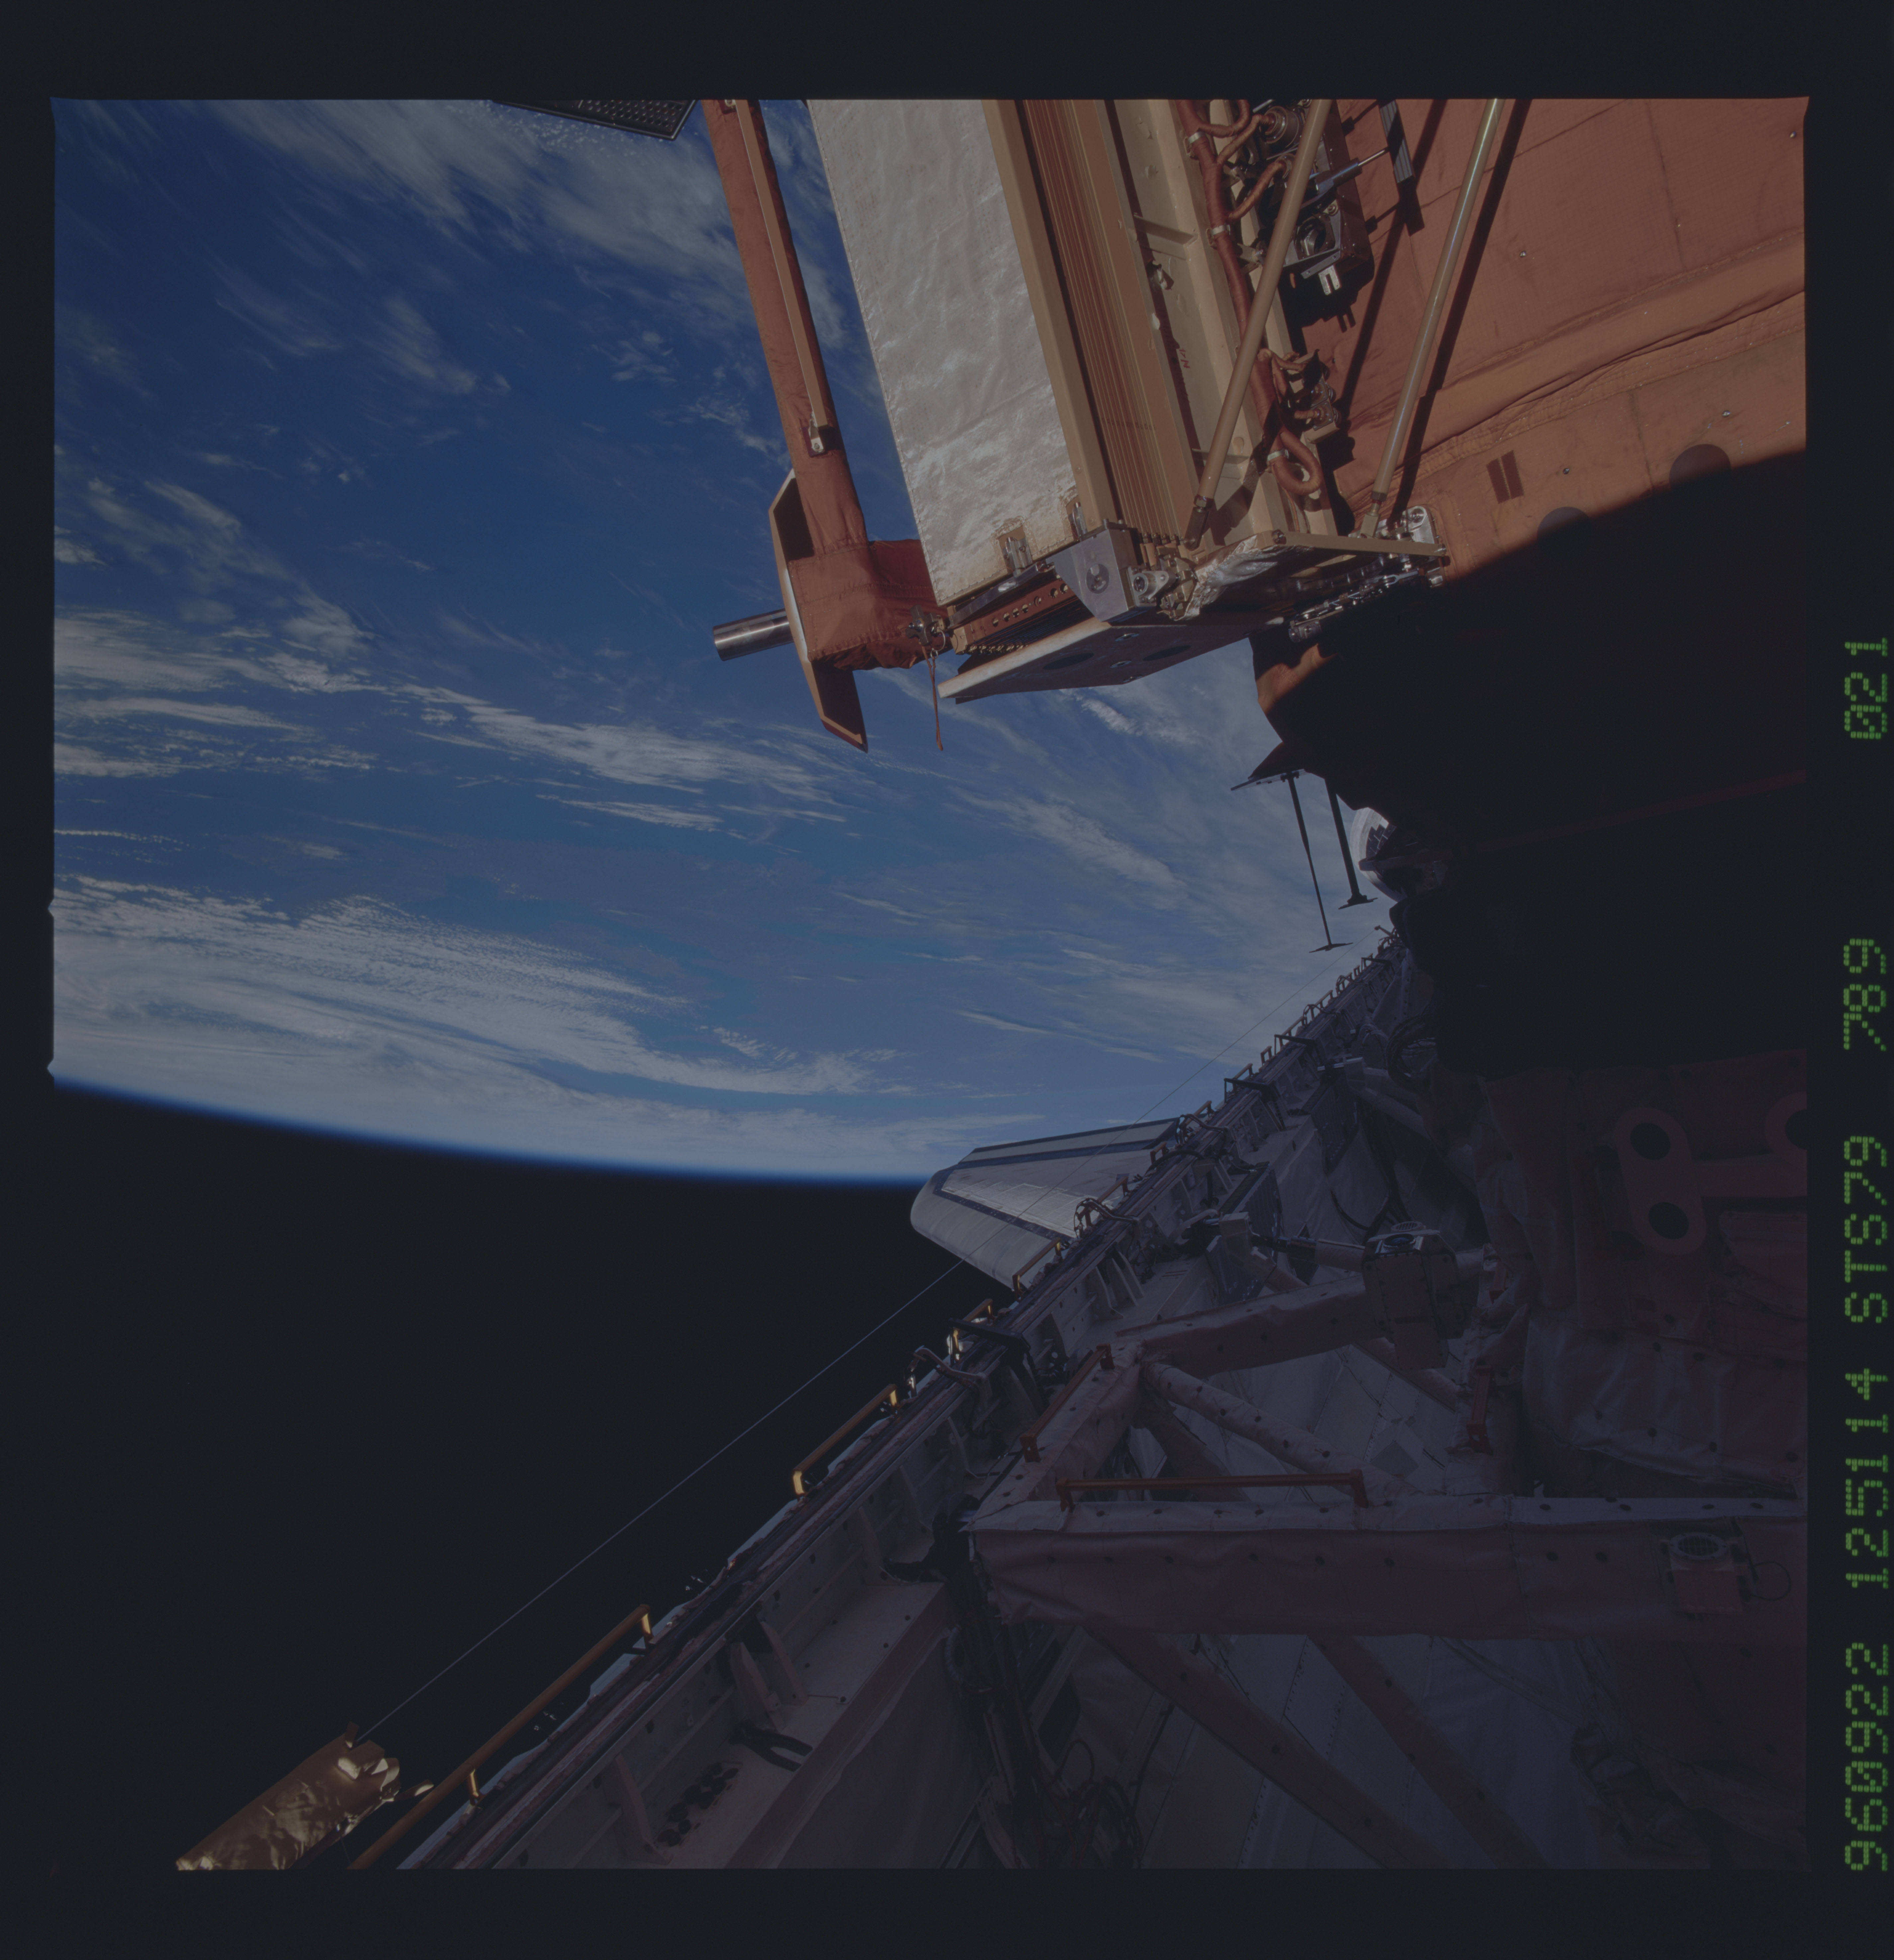 STS079-789-021 - STS-079 - Survey views of the Mir space station